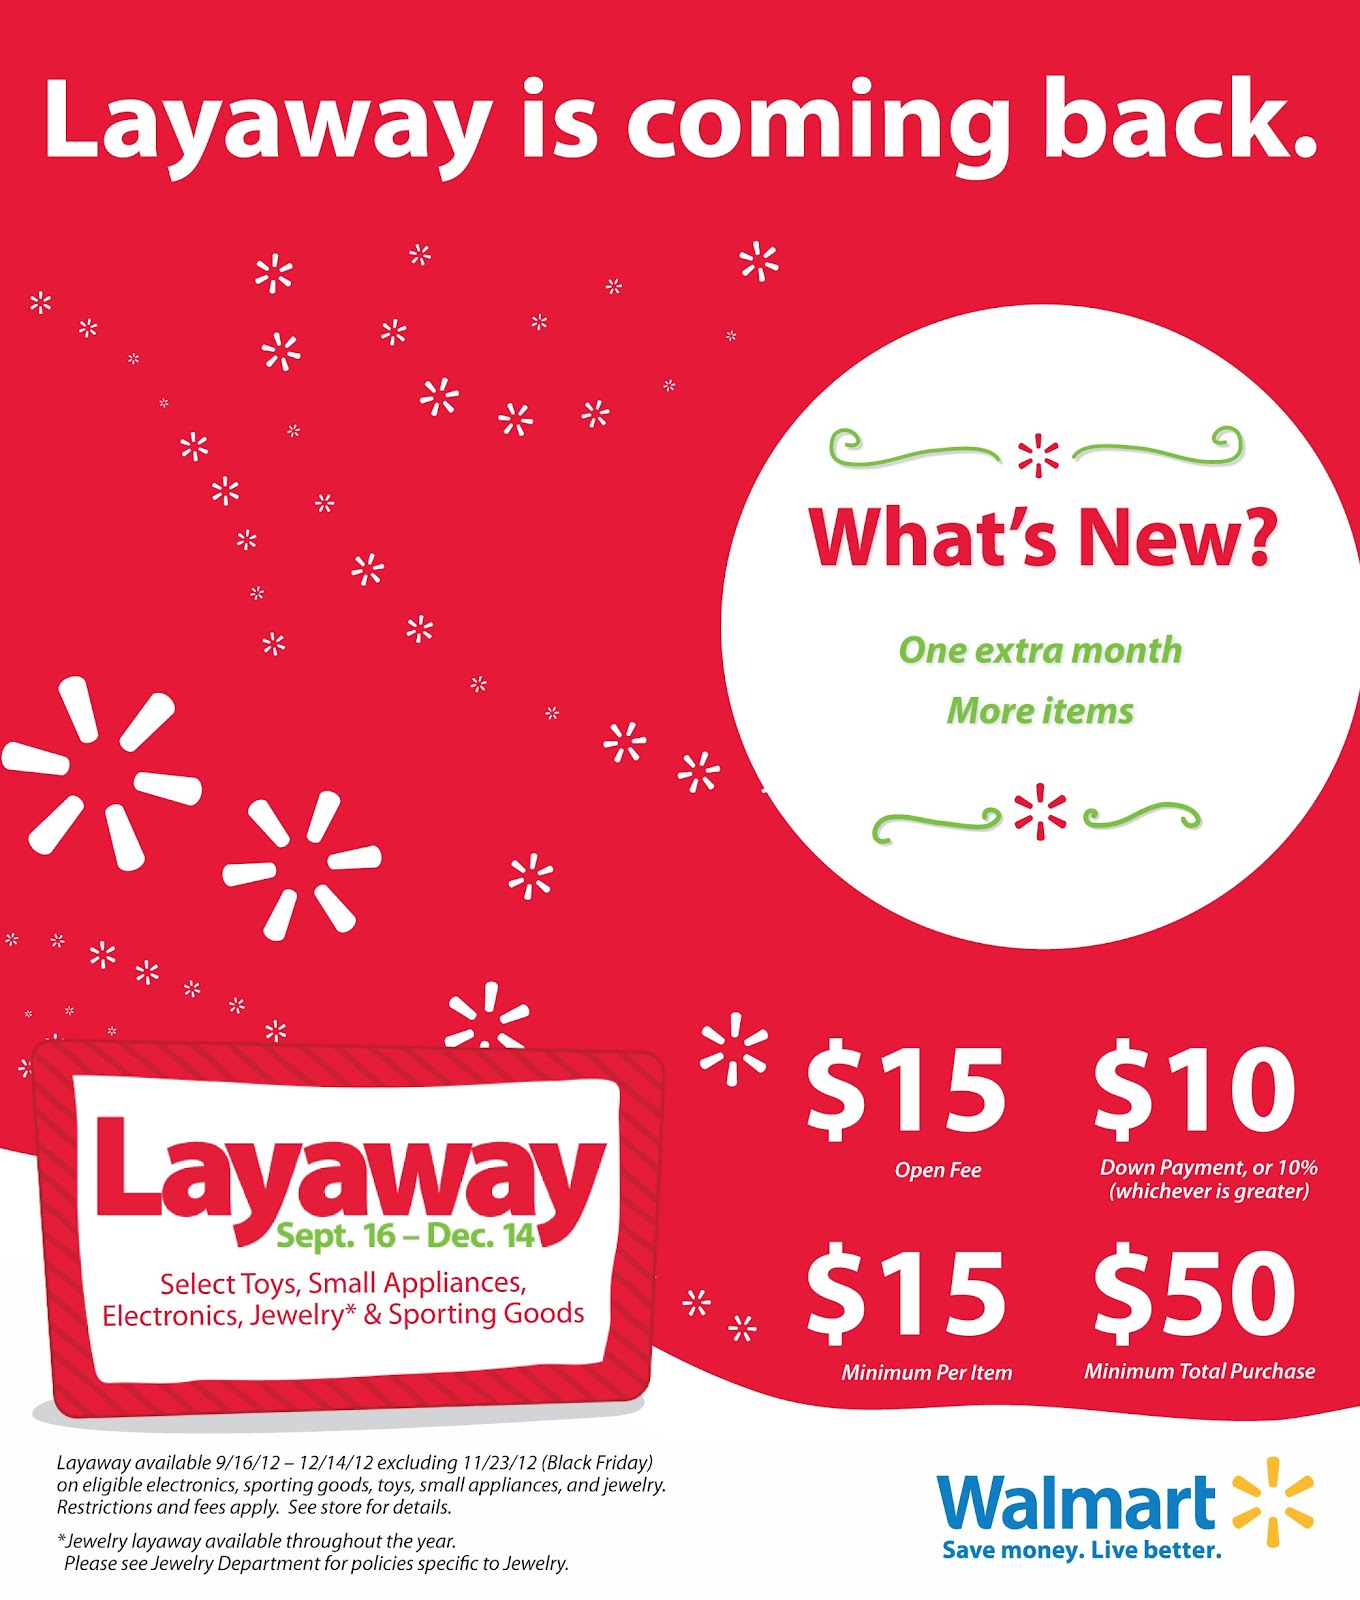 Barbara's Beat: Walmart unveils Top 20 Toy List; Layaway program begins Sunday for toys and more